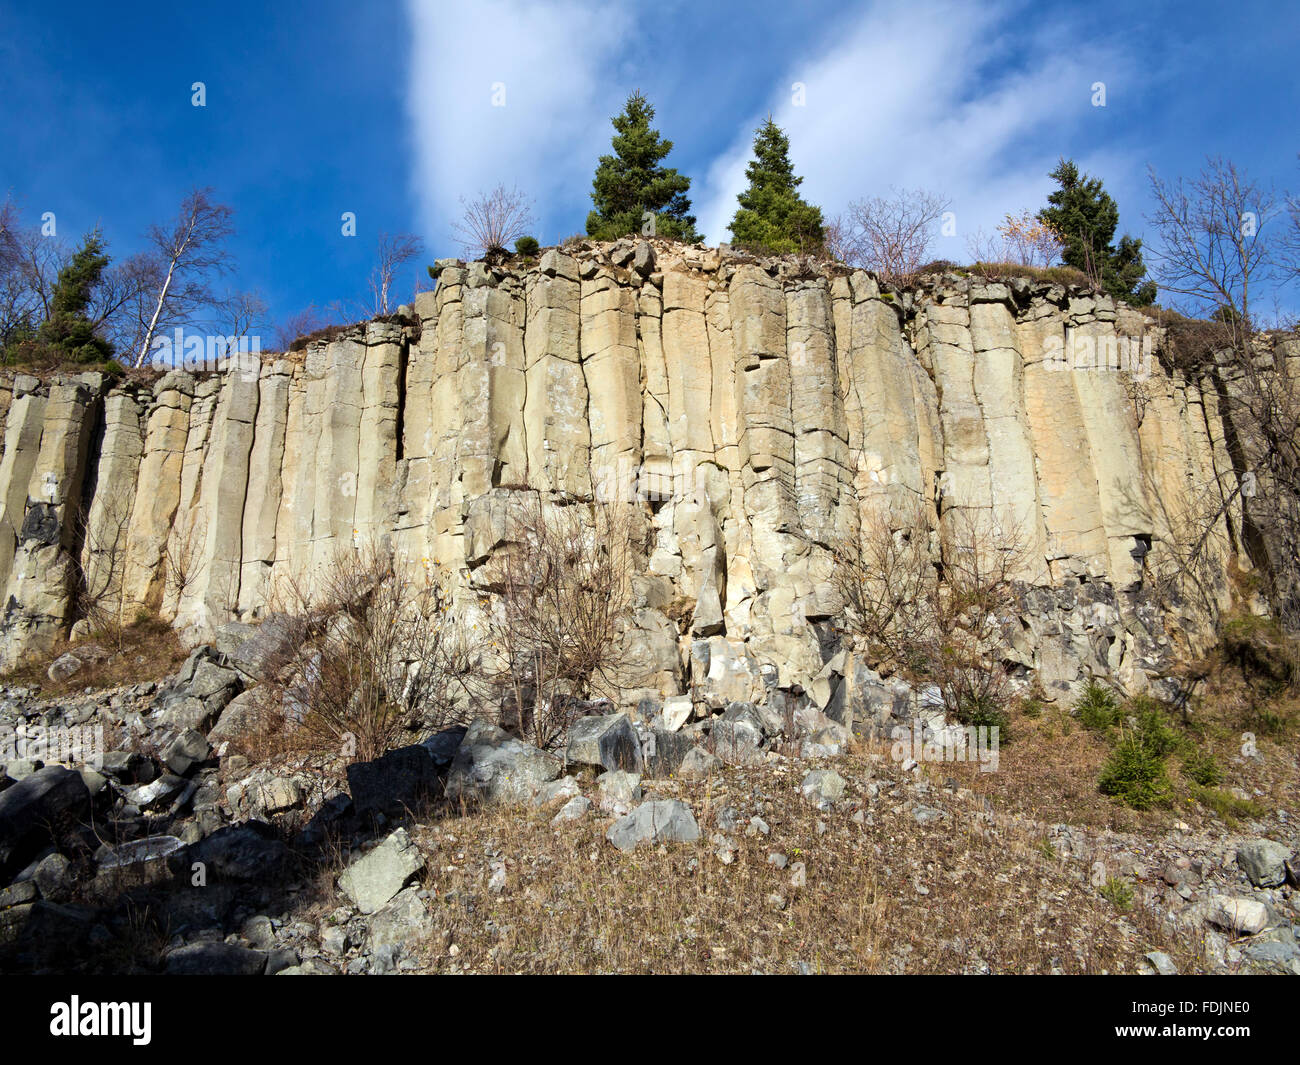 Old basalt quarry in The Ore Mountains - basalt columnar jointing - Stock Image